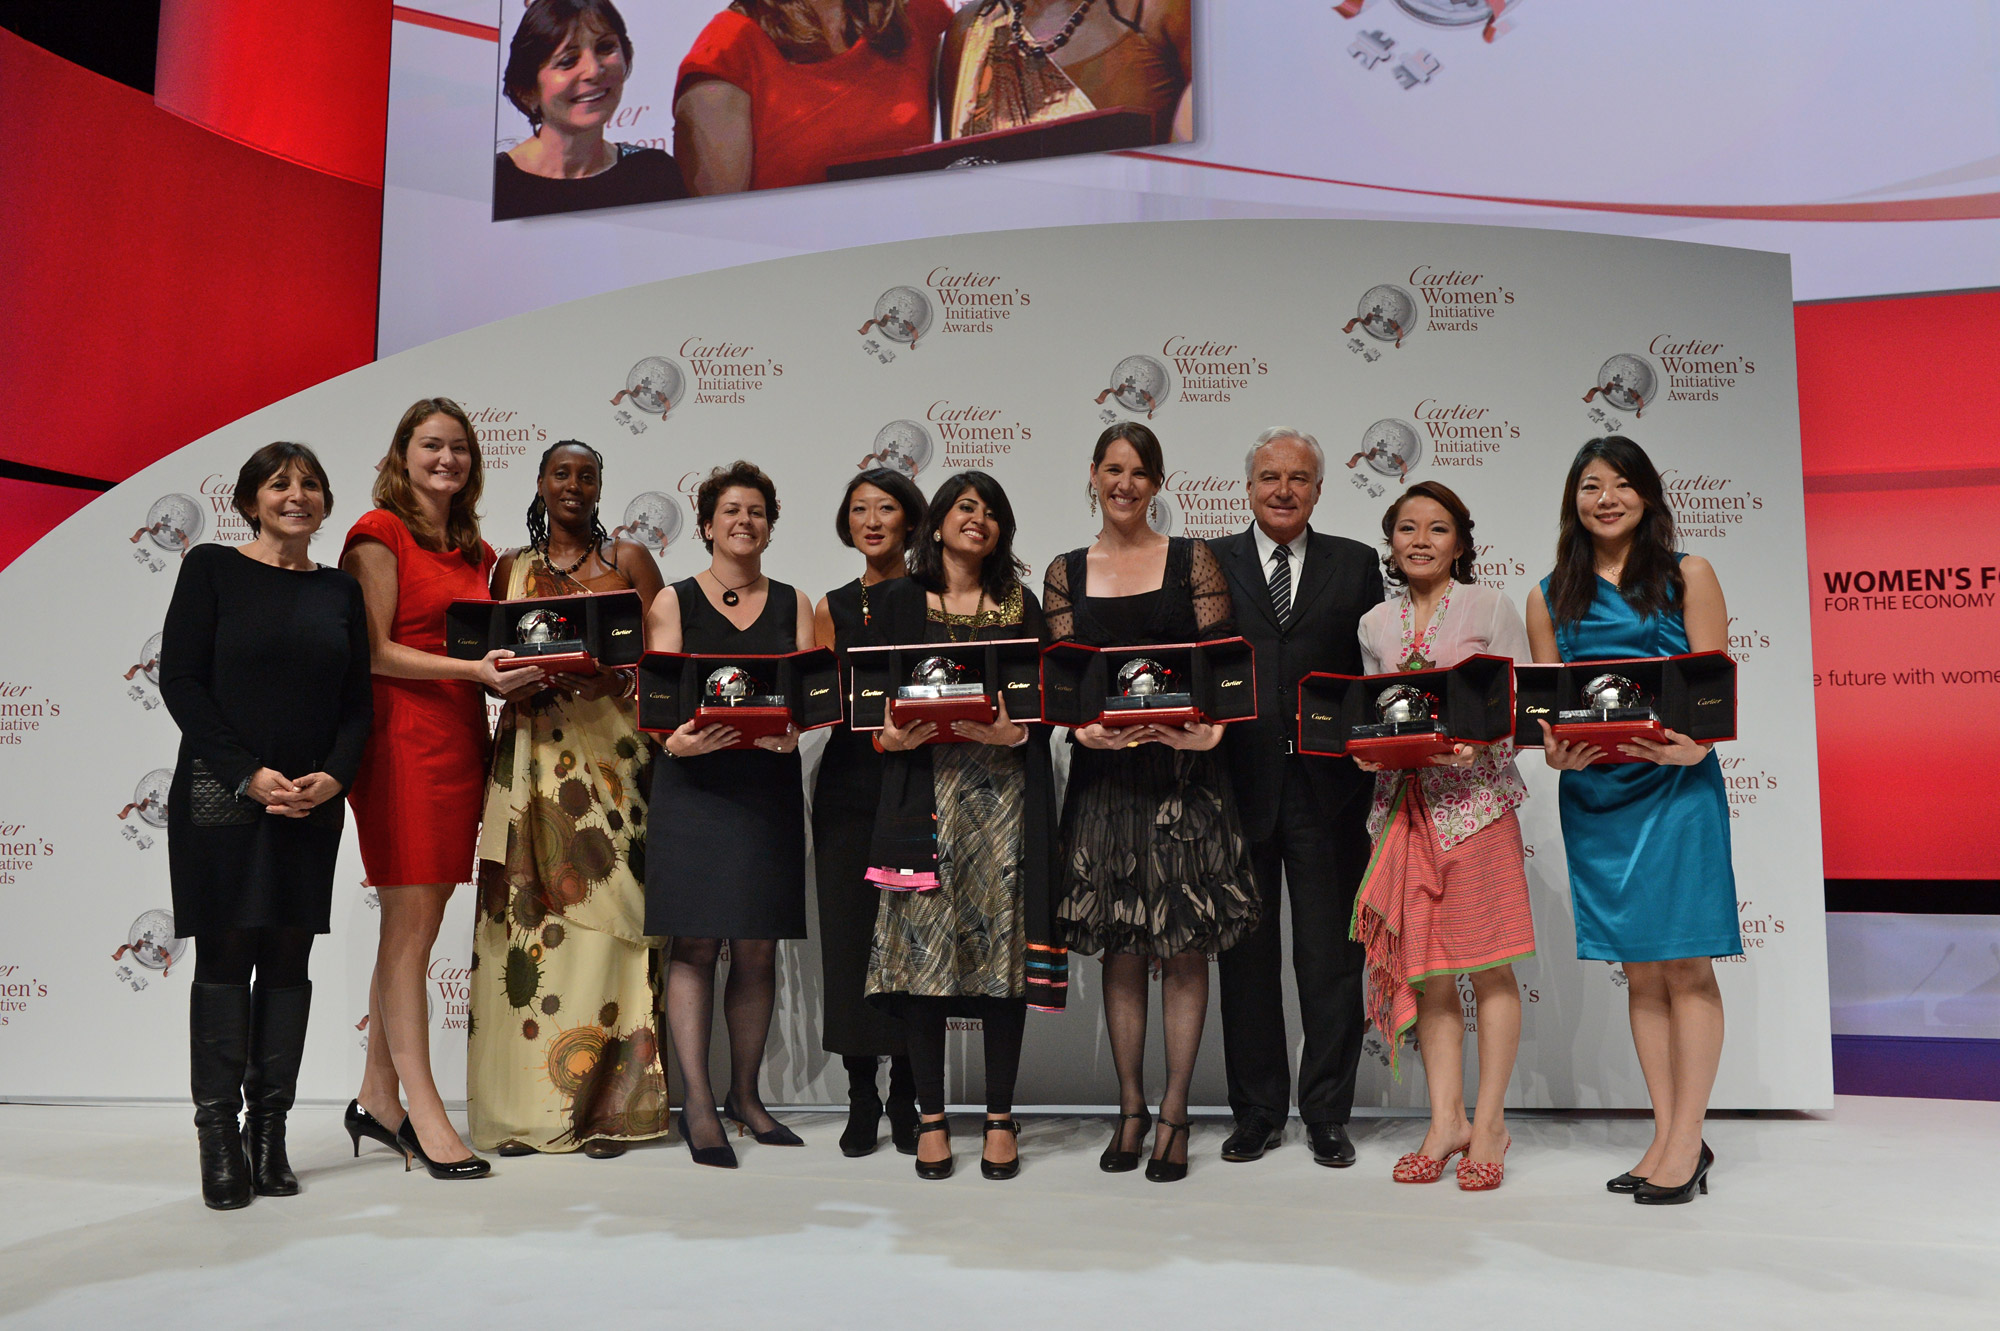 Calling all women entrepreneurs! Cartier Women's Initiative Awards is an experience of a lifetime!